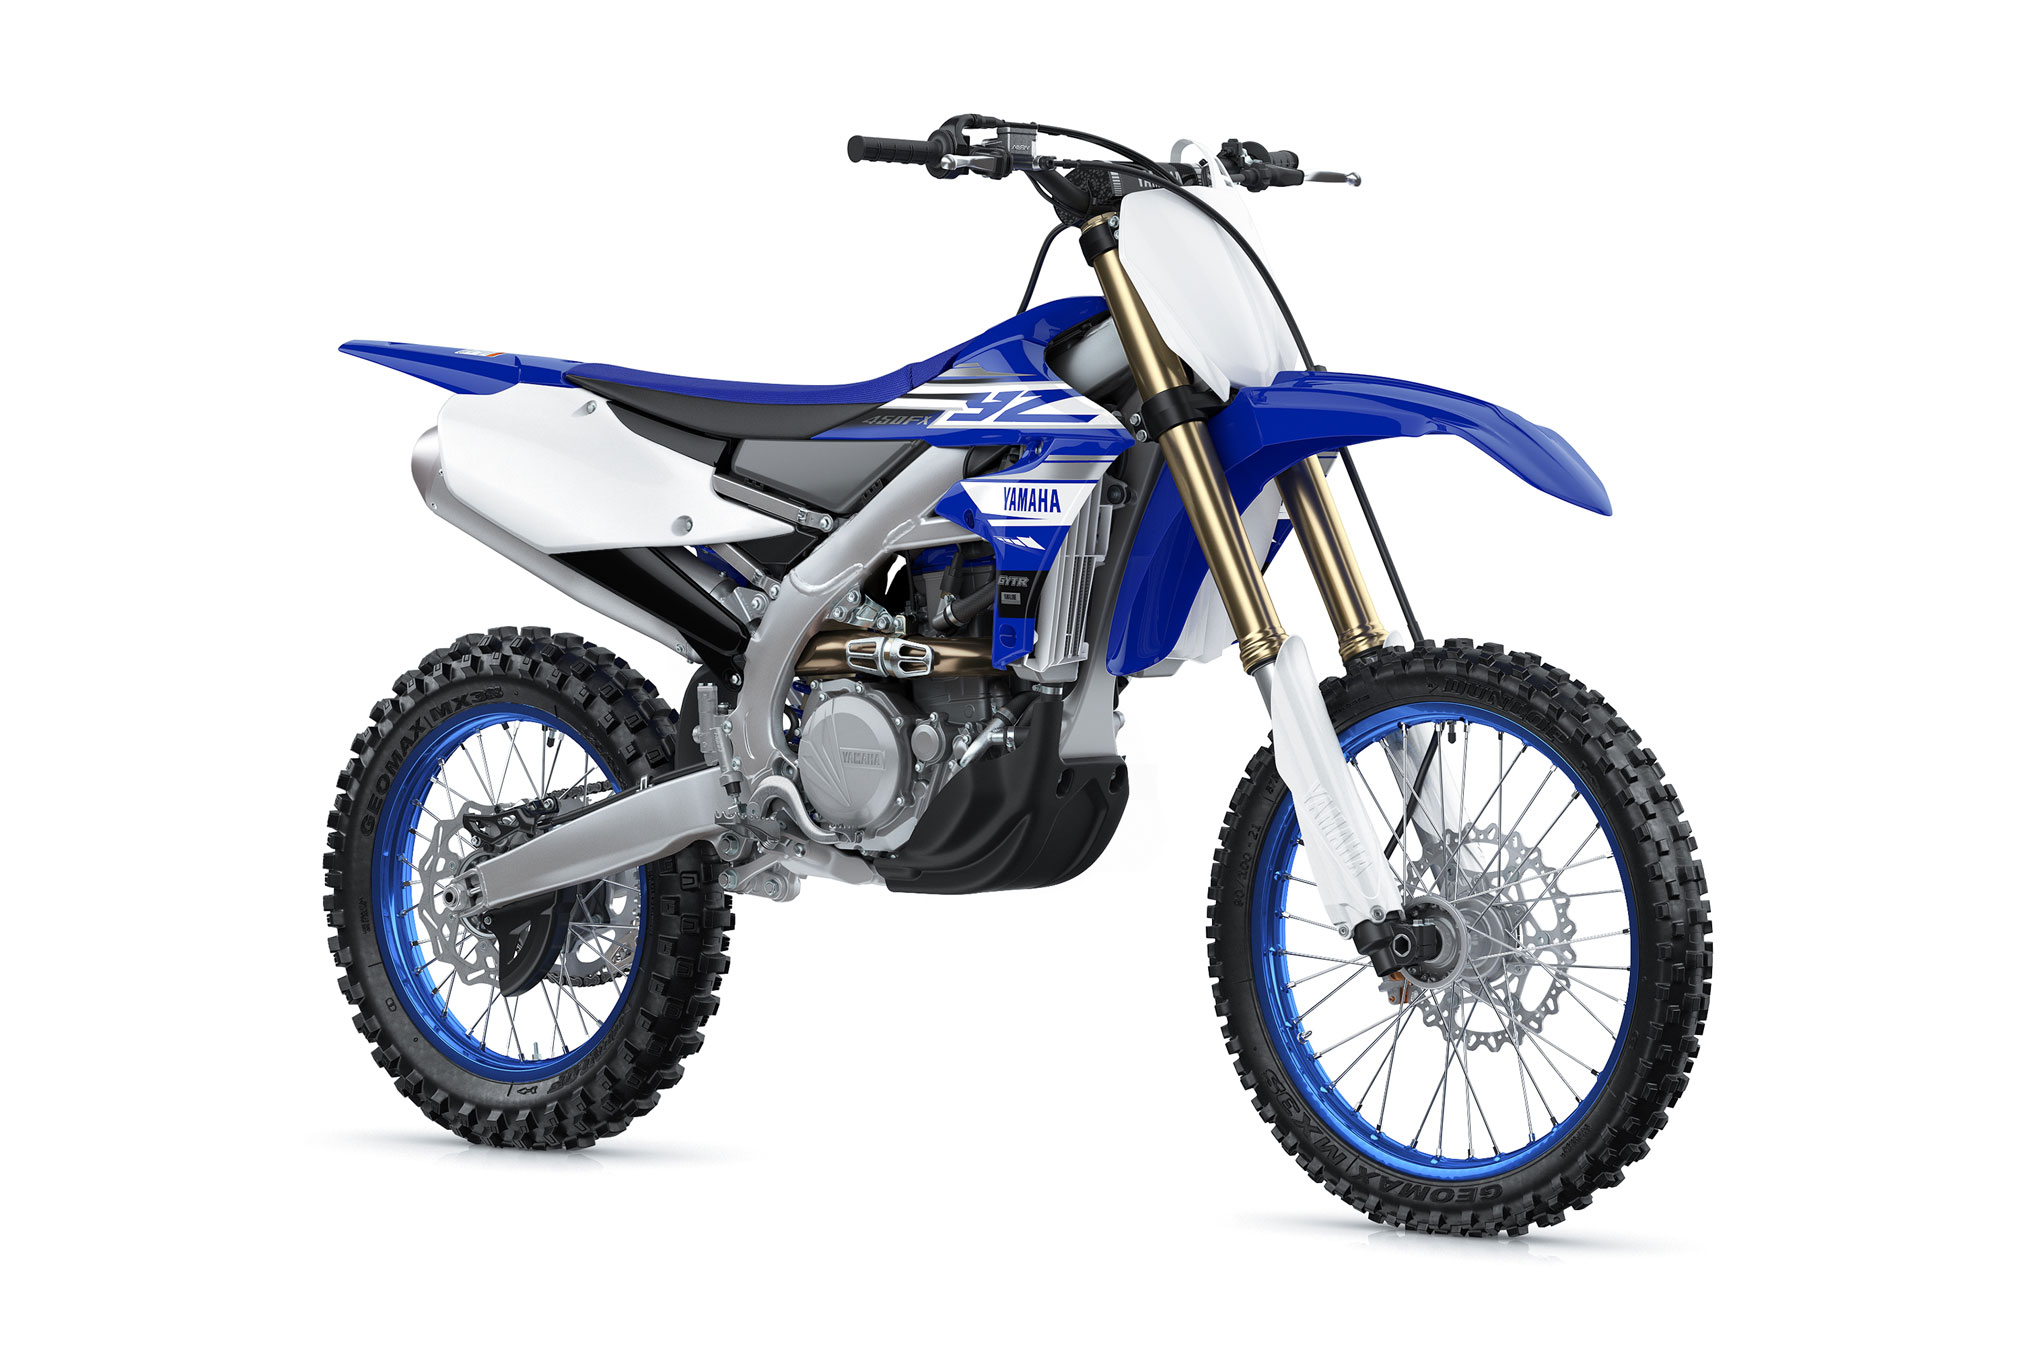 2019 yamaha yz450fx guide total motorcycle. Black Bedroom Furniture Sets. Home Design Ideas